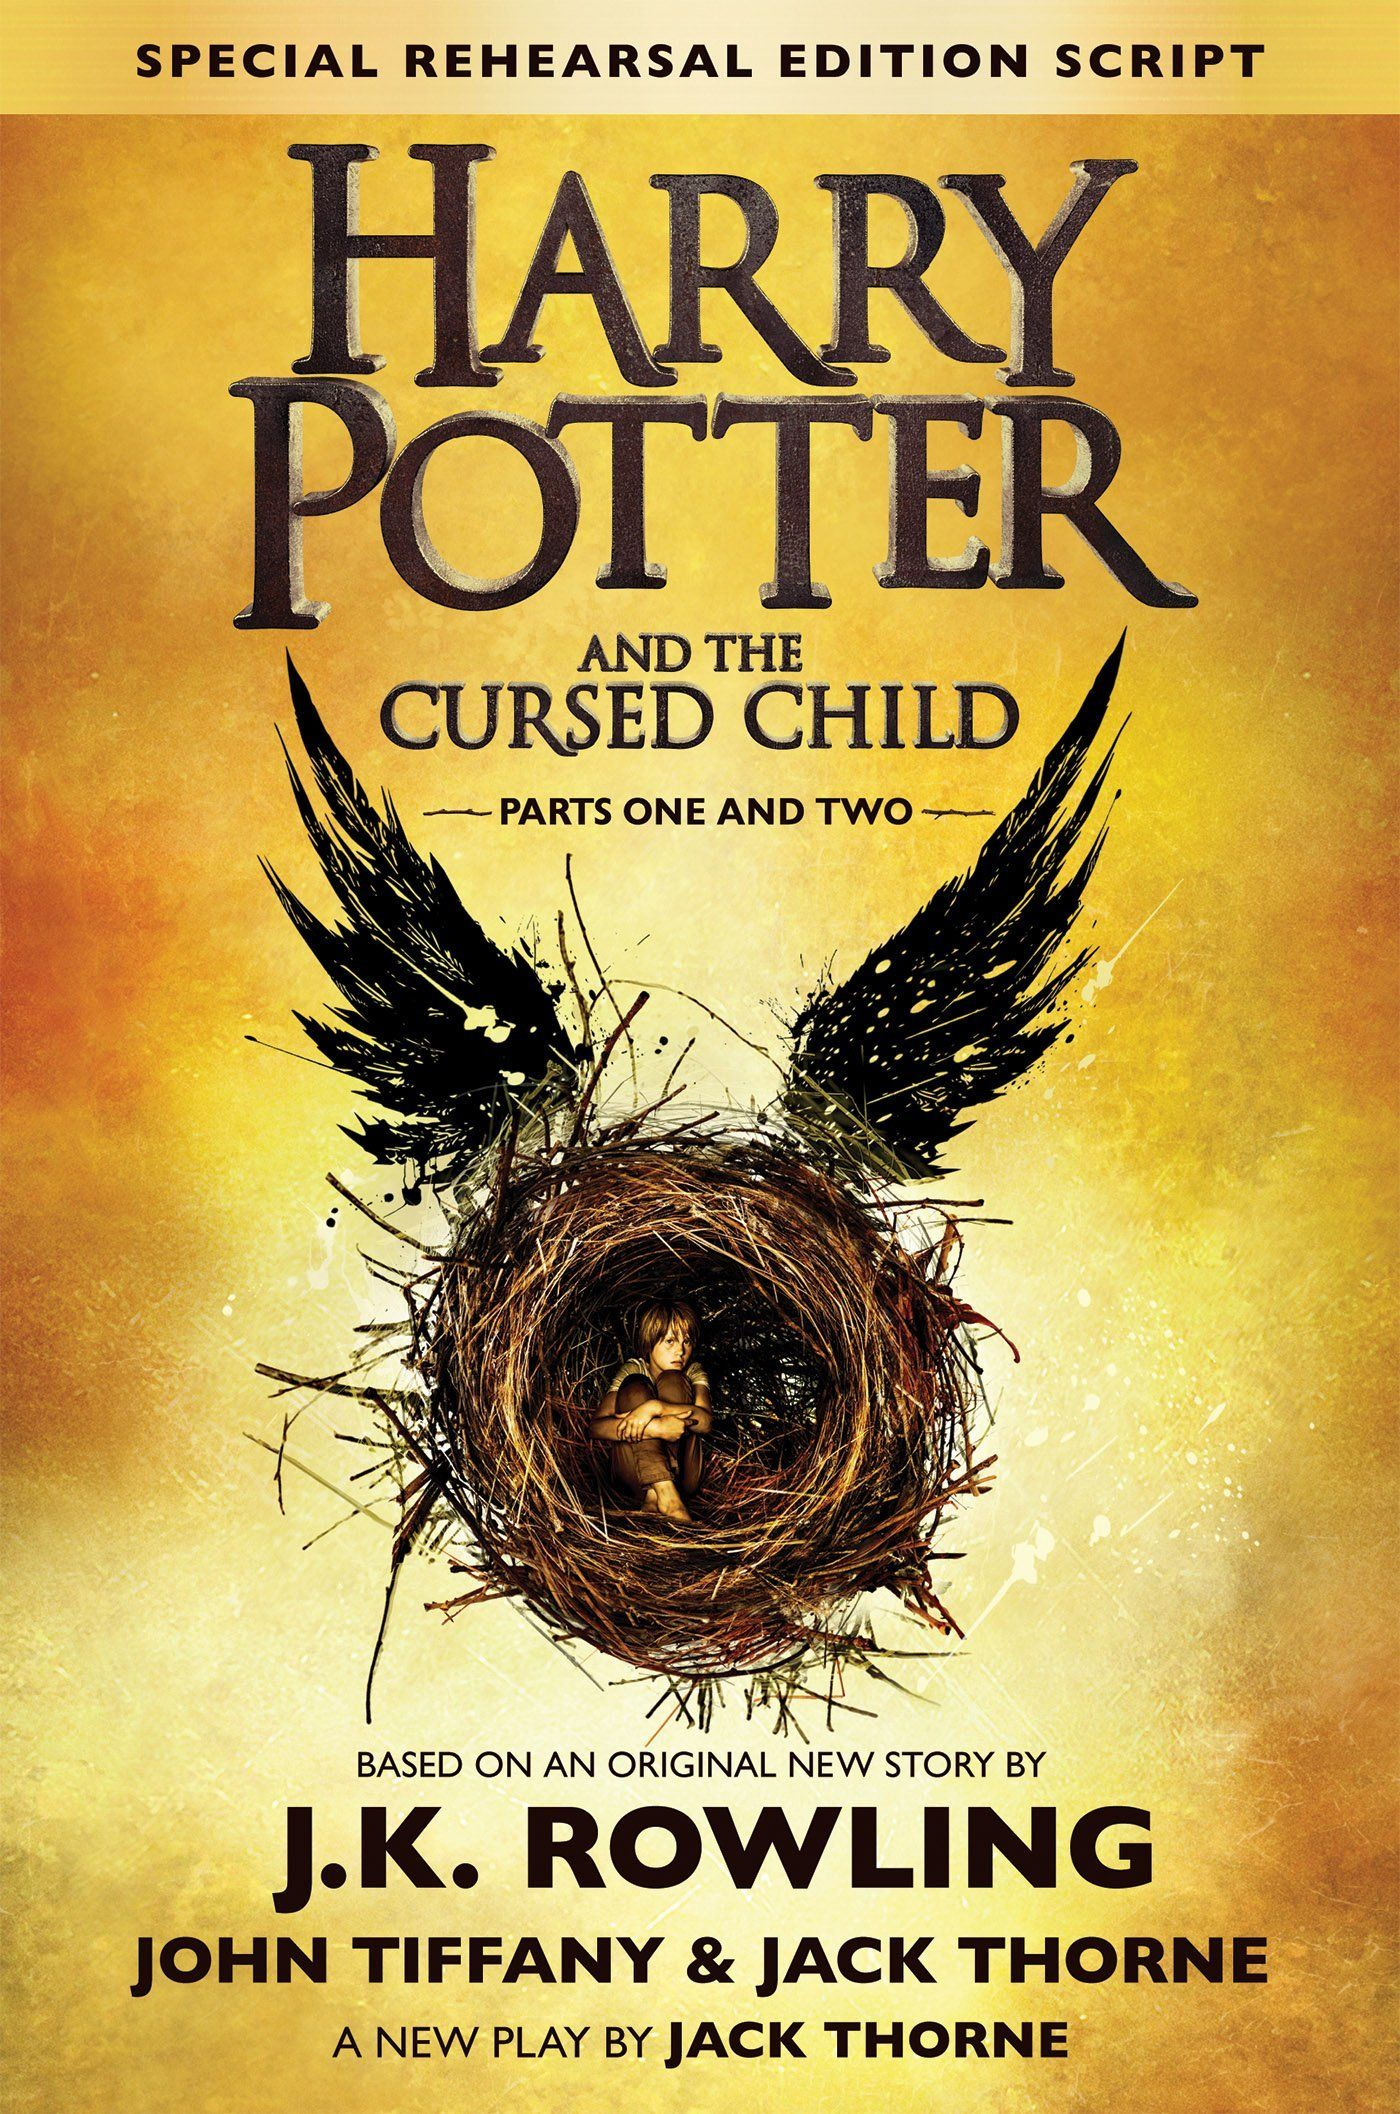 Harry Potter and the Cursed Child - parts 1 and 2 - 1